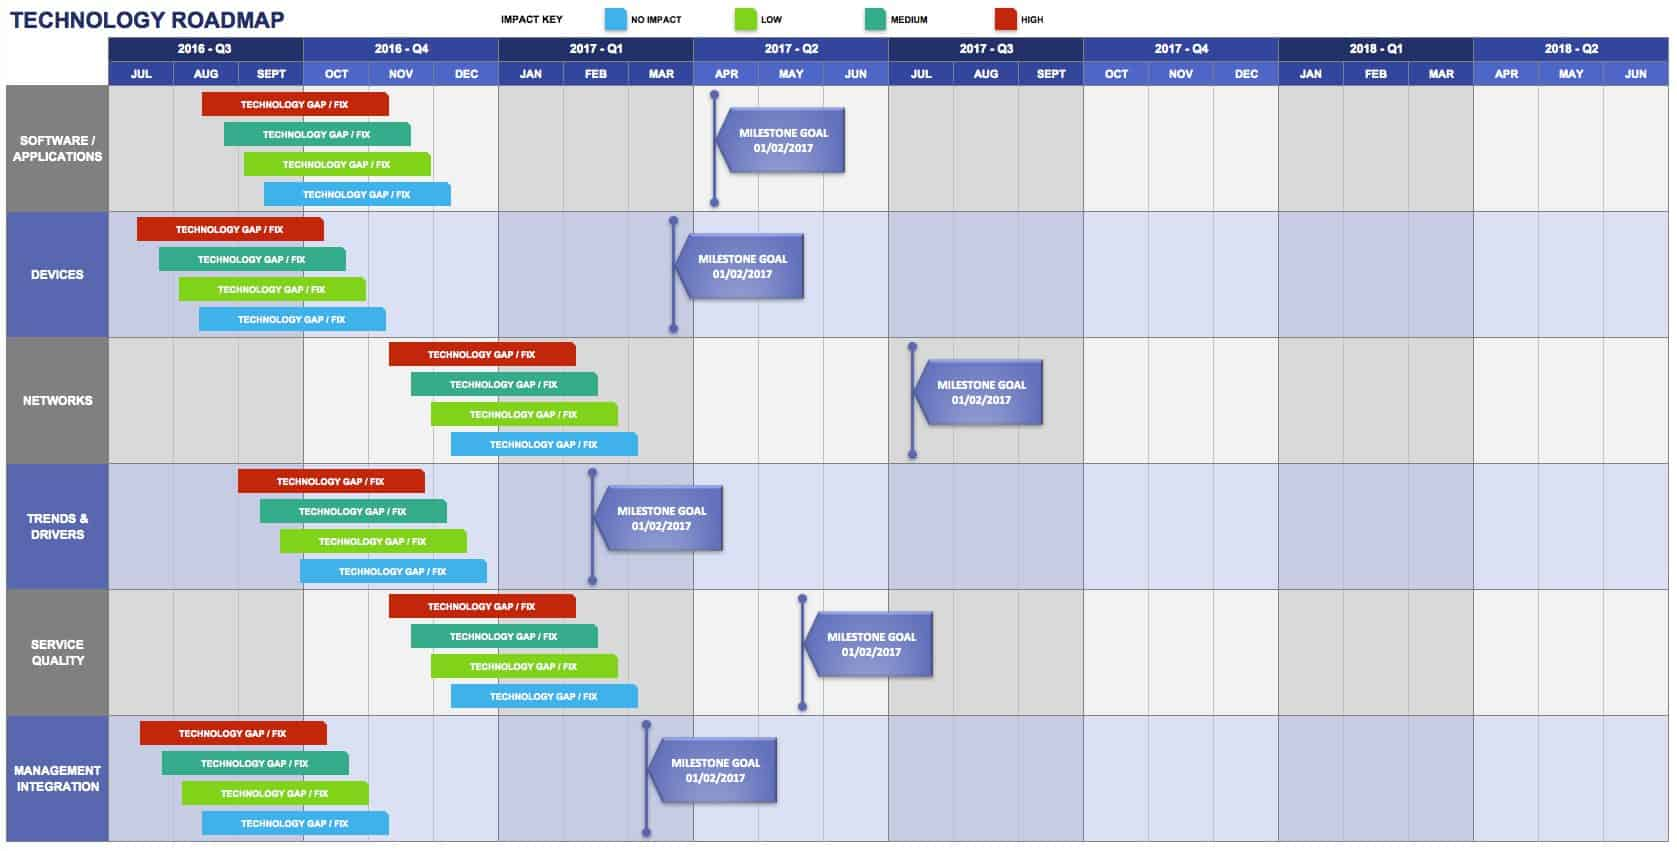 Free Product Roadmap Templates Smartsheet - Company roadmap template